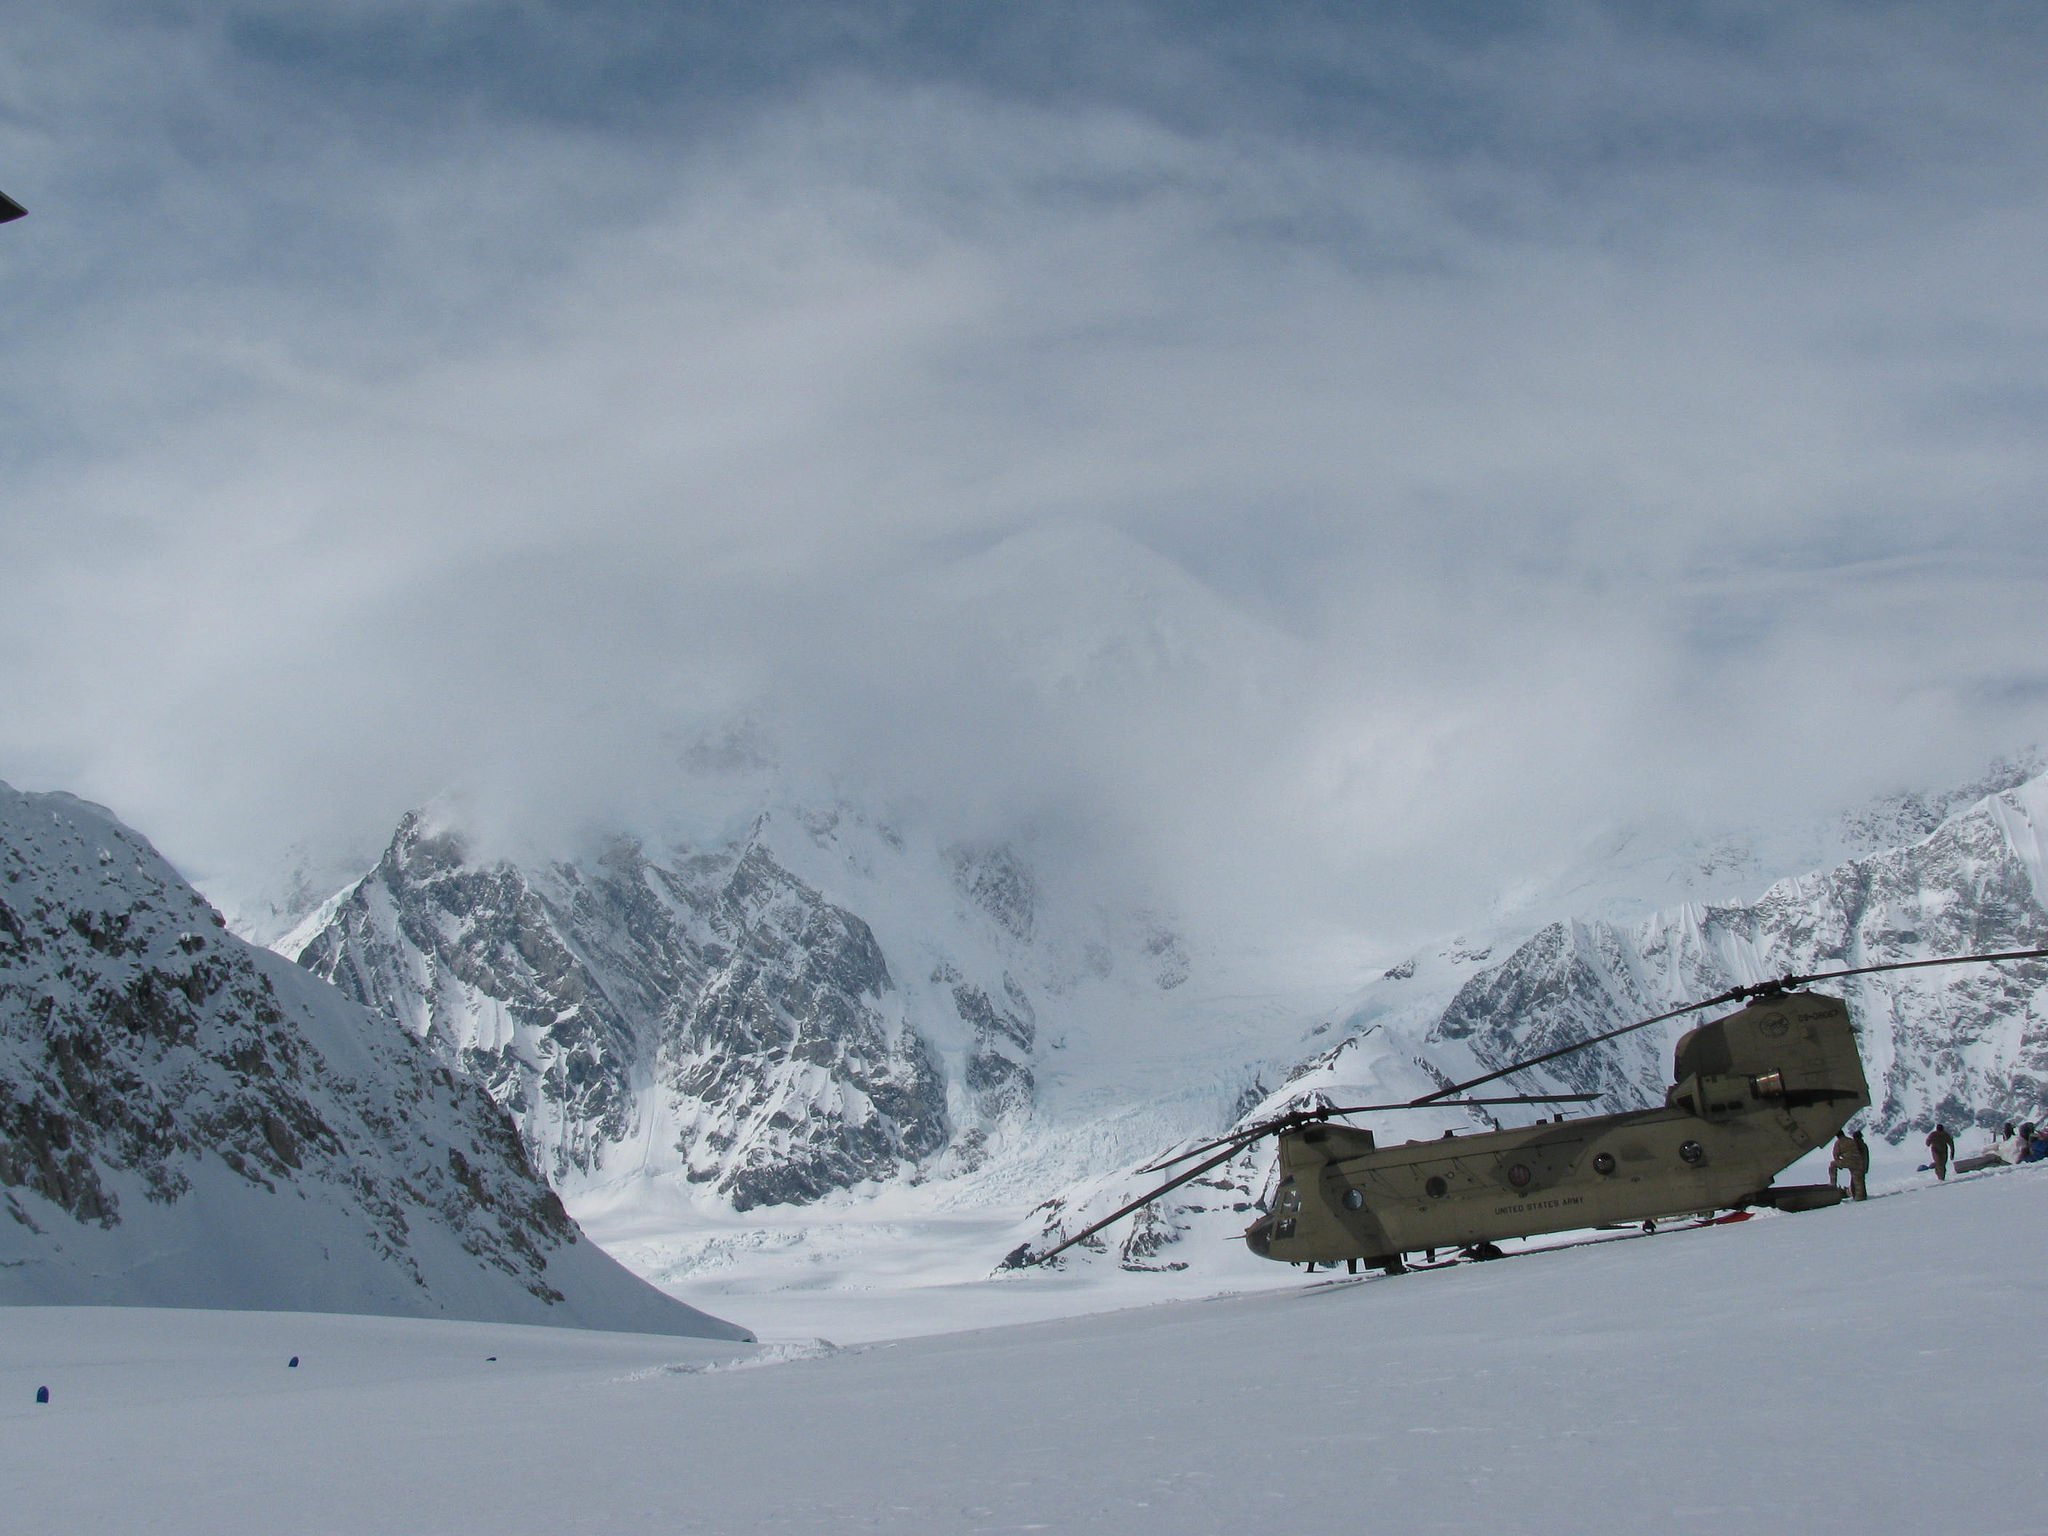 A CH-47 lands on the Kahiltna Glacier, surrounded by snowy peaks